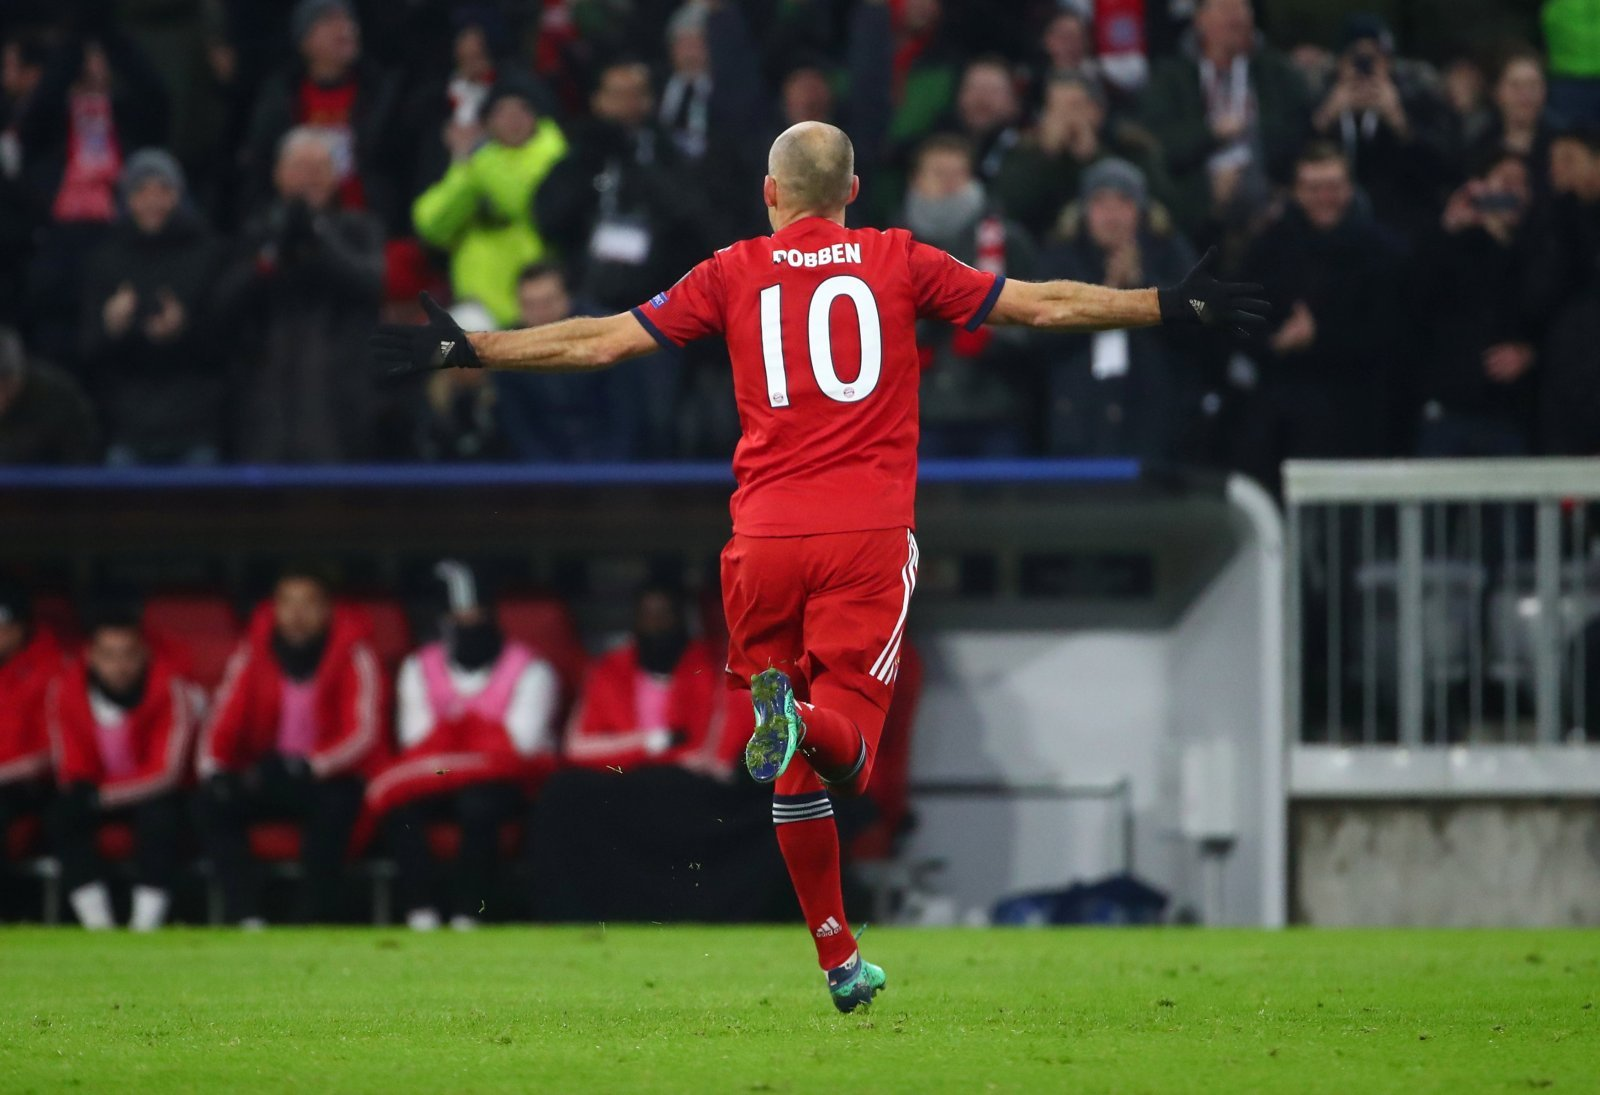 Arjen Robben unlikely to play for Bayern Munich against Liverpool